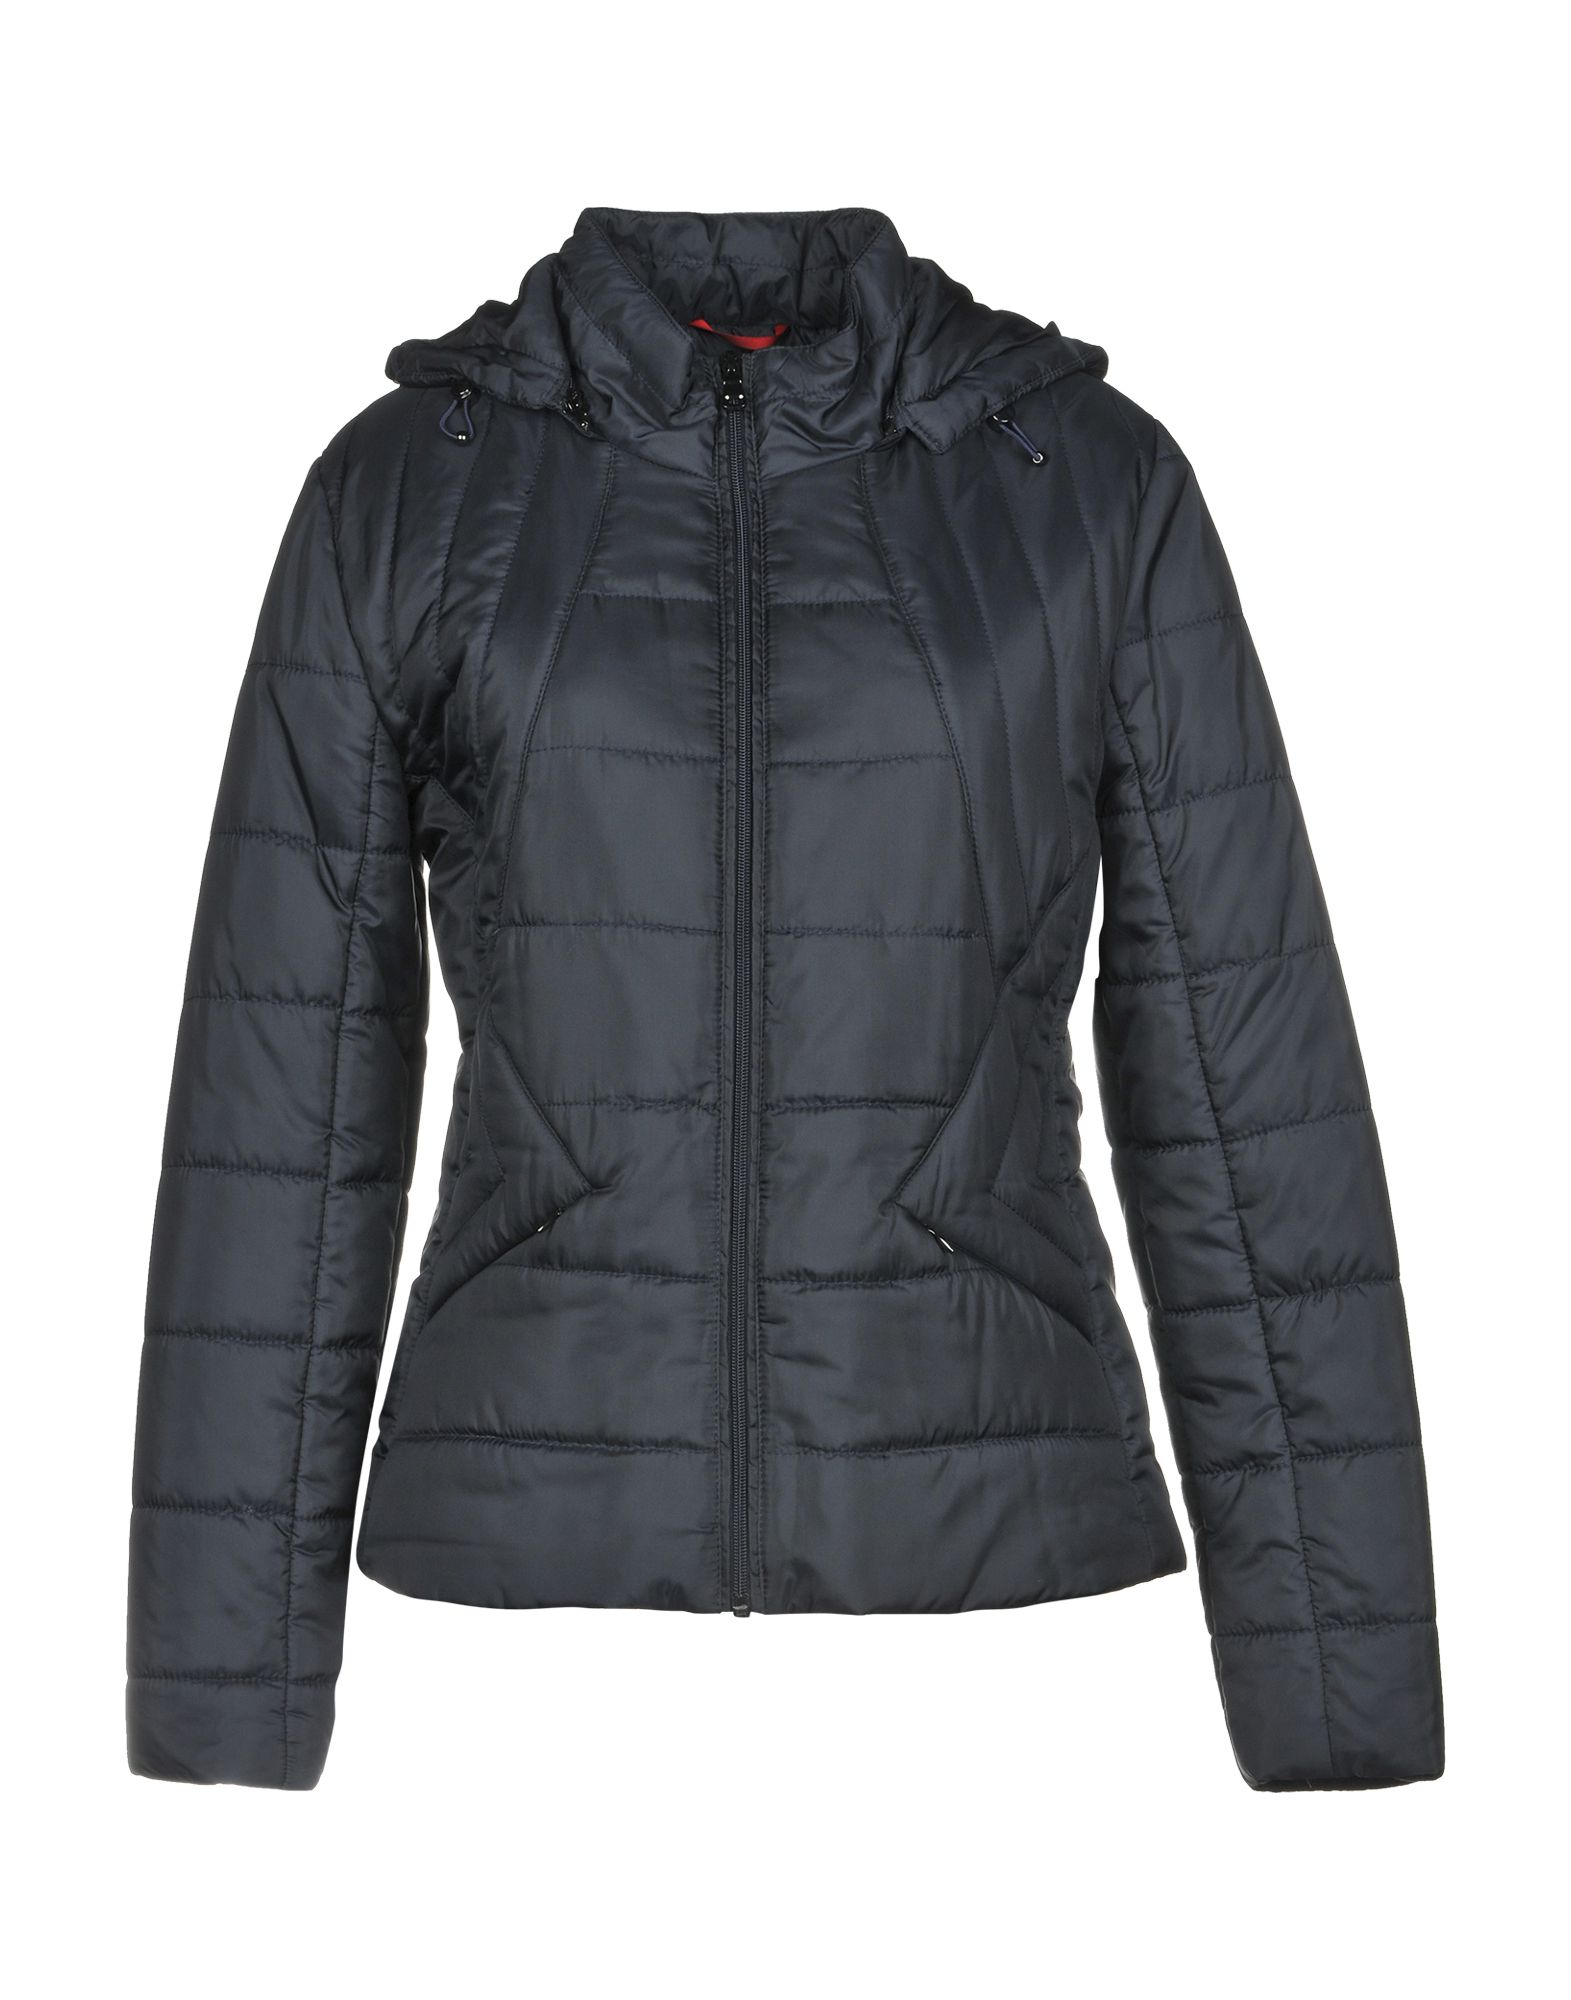 139eefb3fe11 El Internationale Jacket - Women El Internationale Jackets online on ...